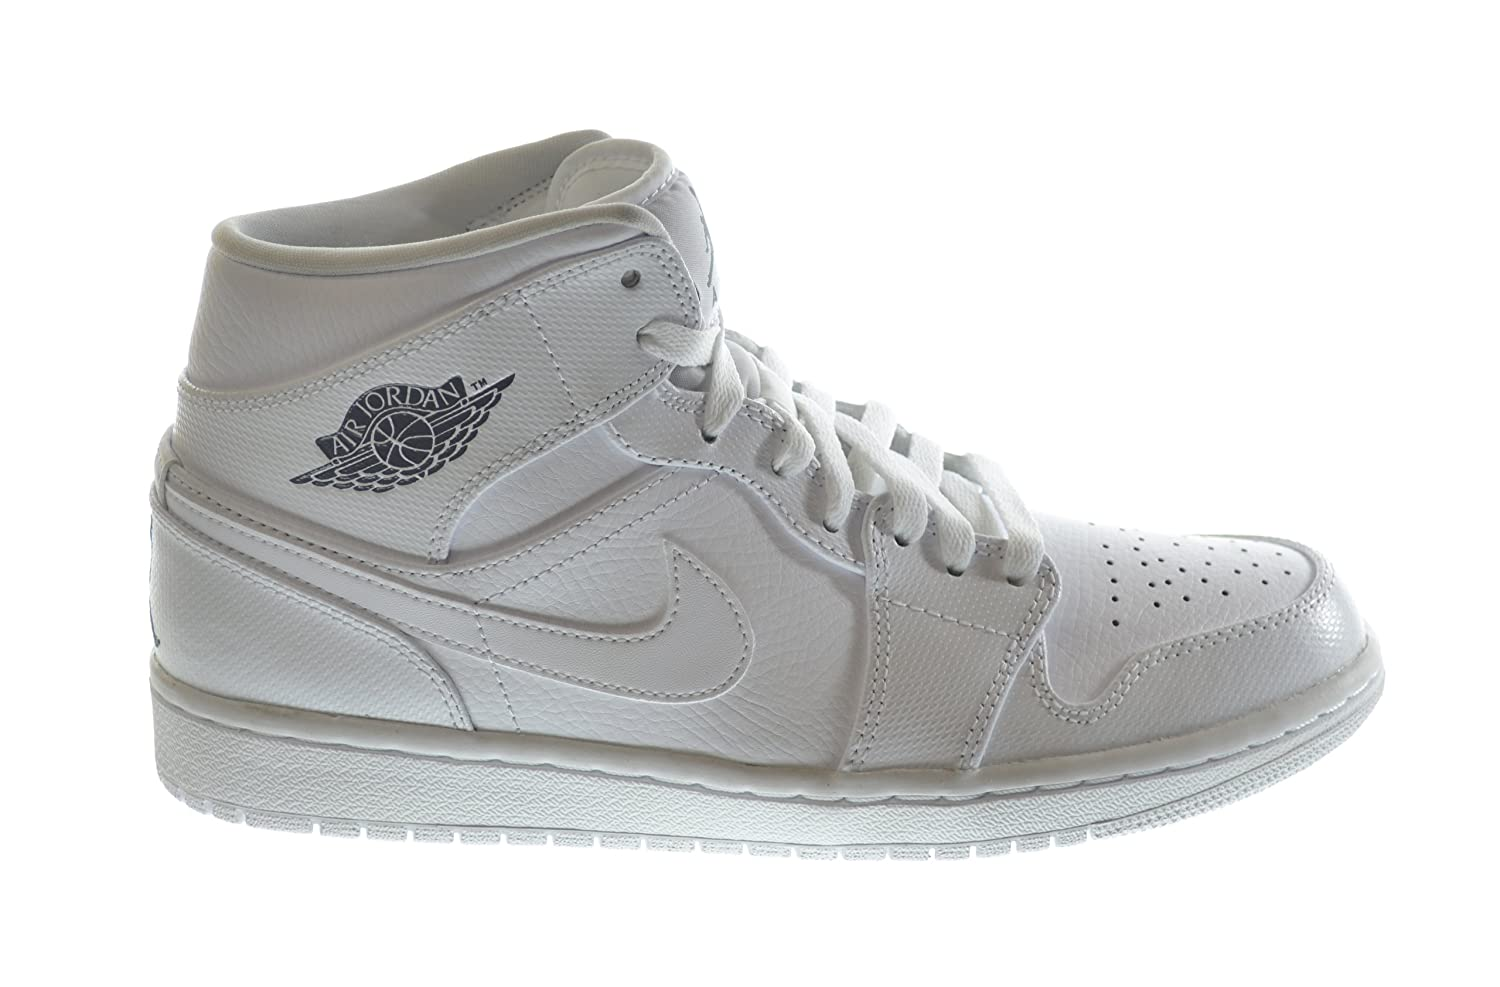 new arrival dbfca b5e7f Amazon.com   Air Jordan 1 Mid Men s Basketball Shoes White Cool Grey-White  554724-120   Shoes